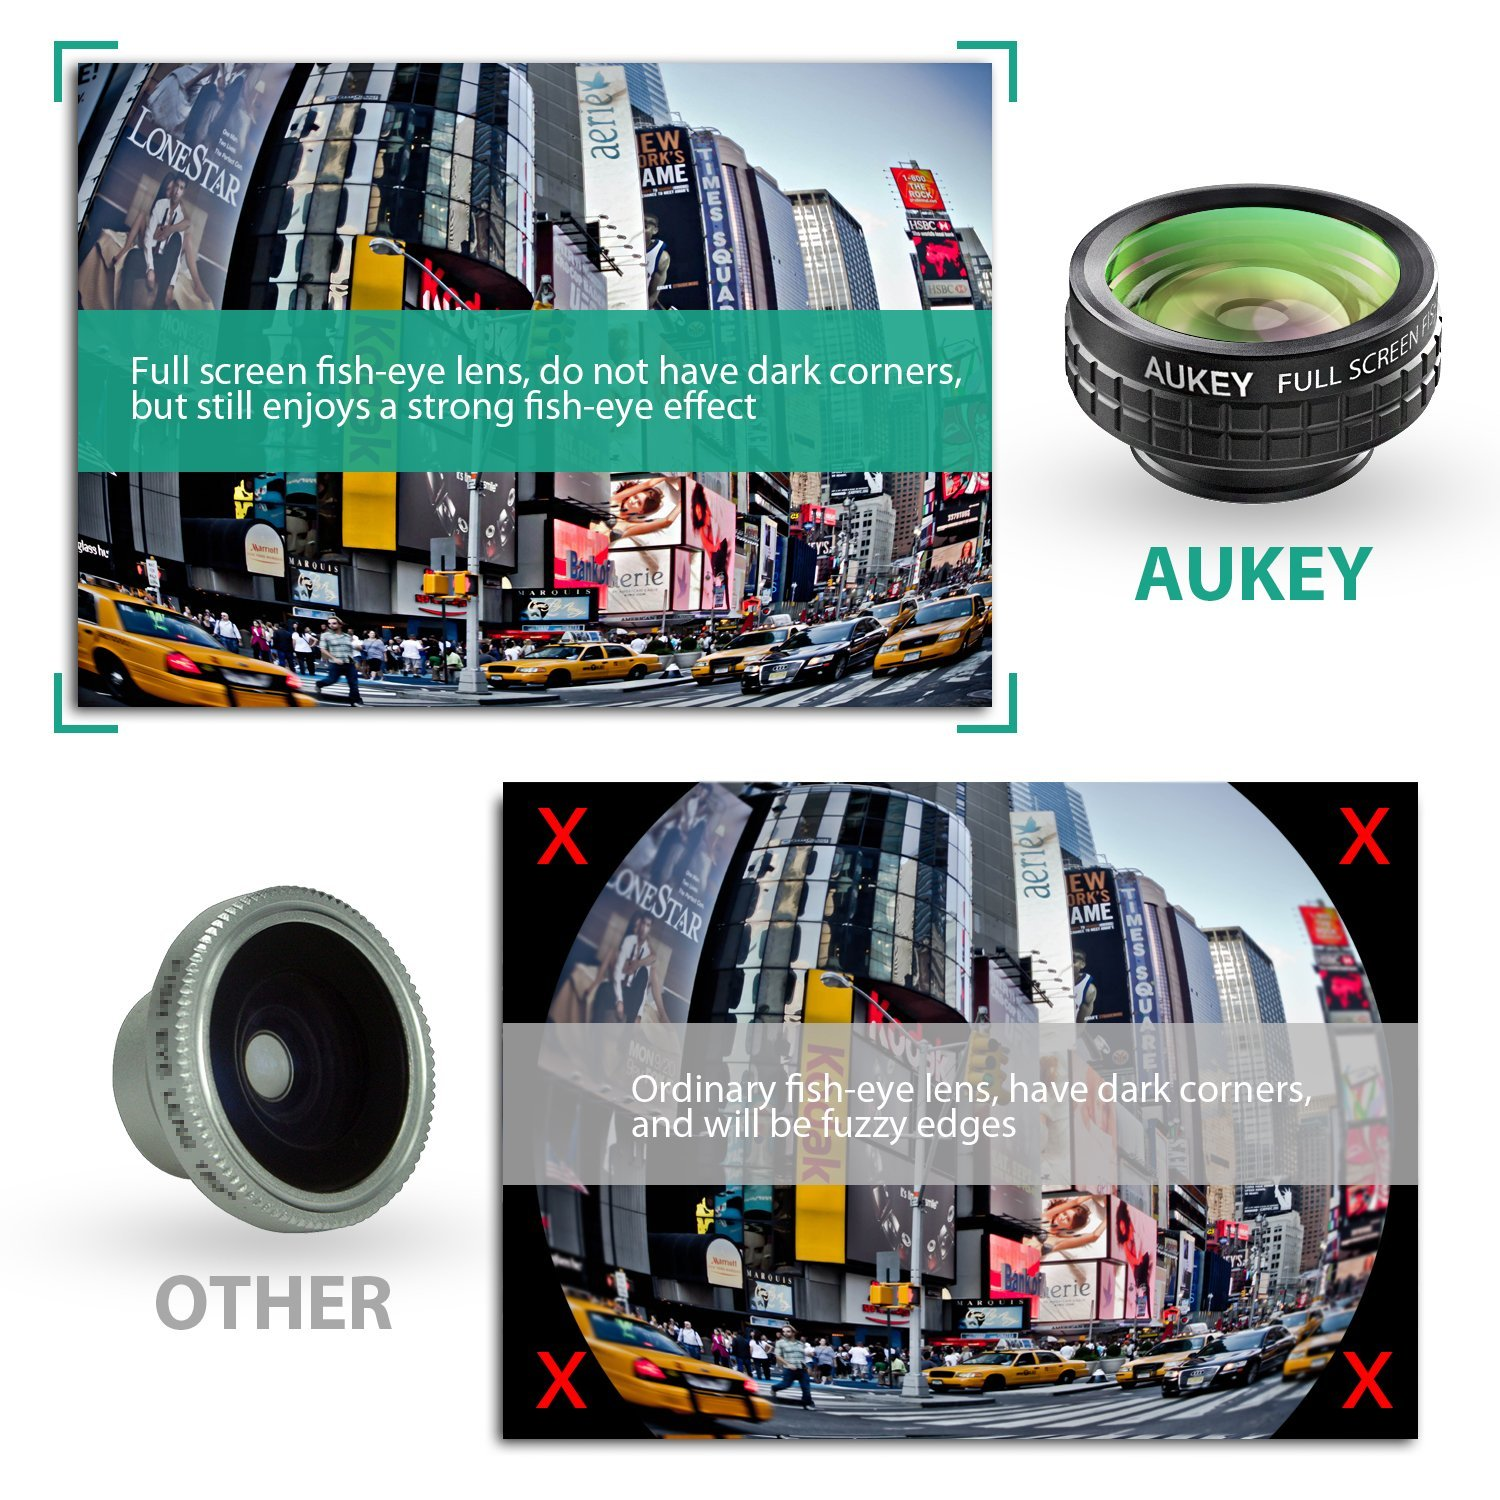 Aukey 3 in 1 lenses